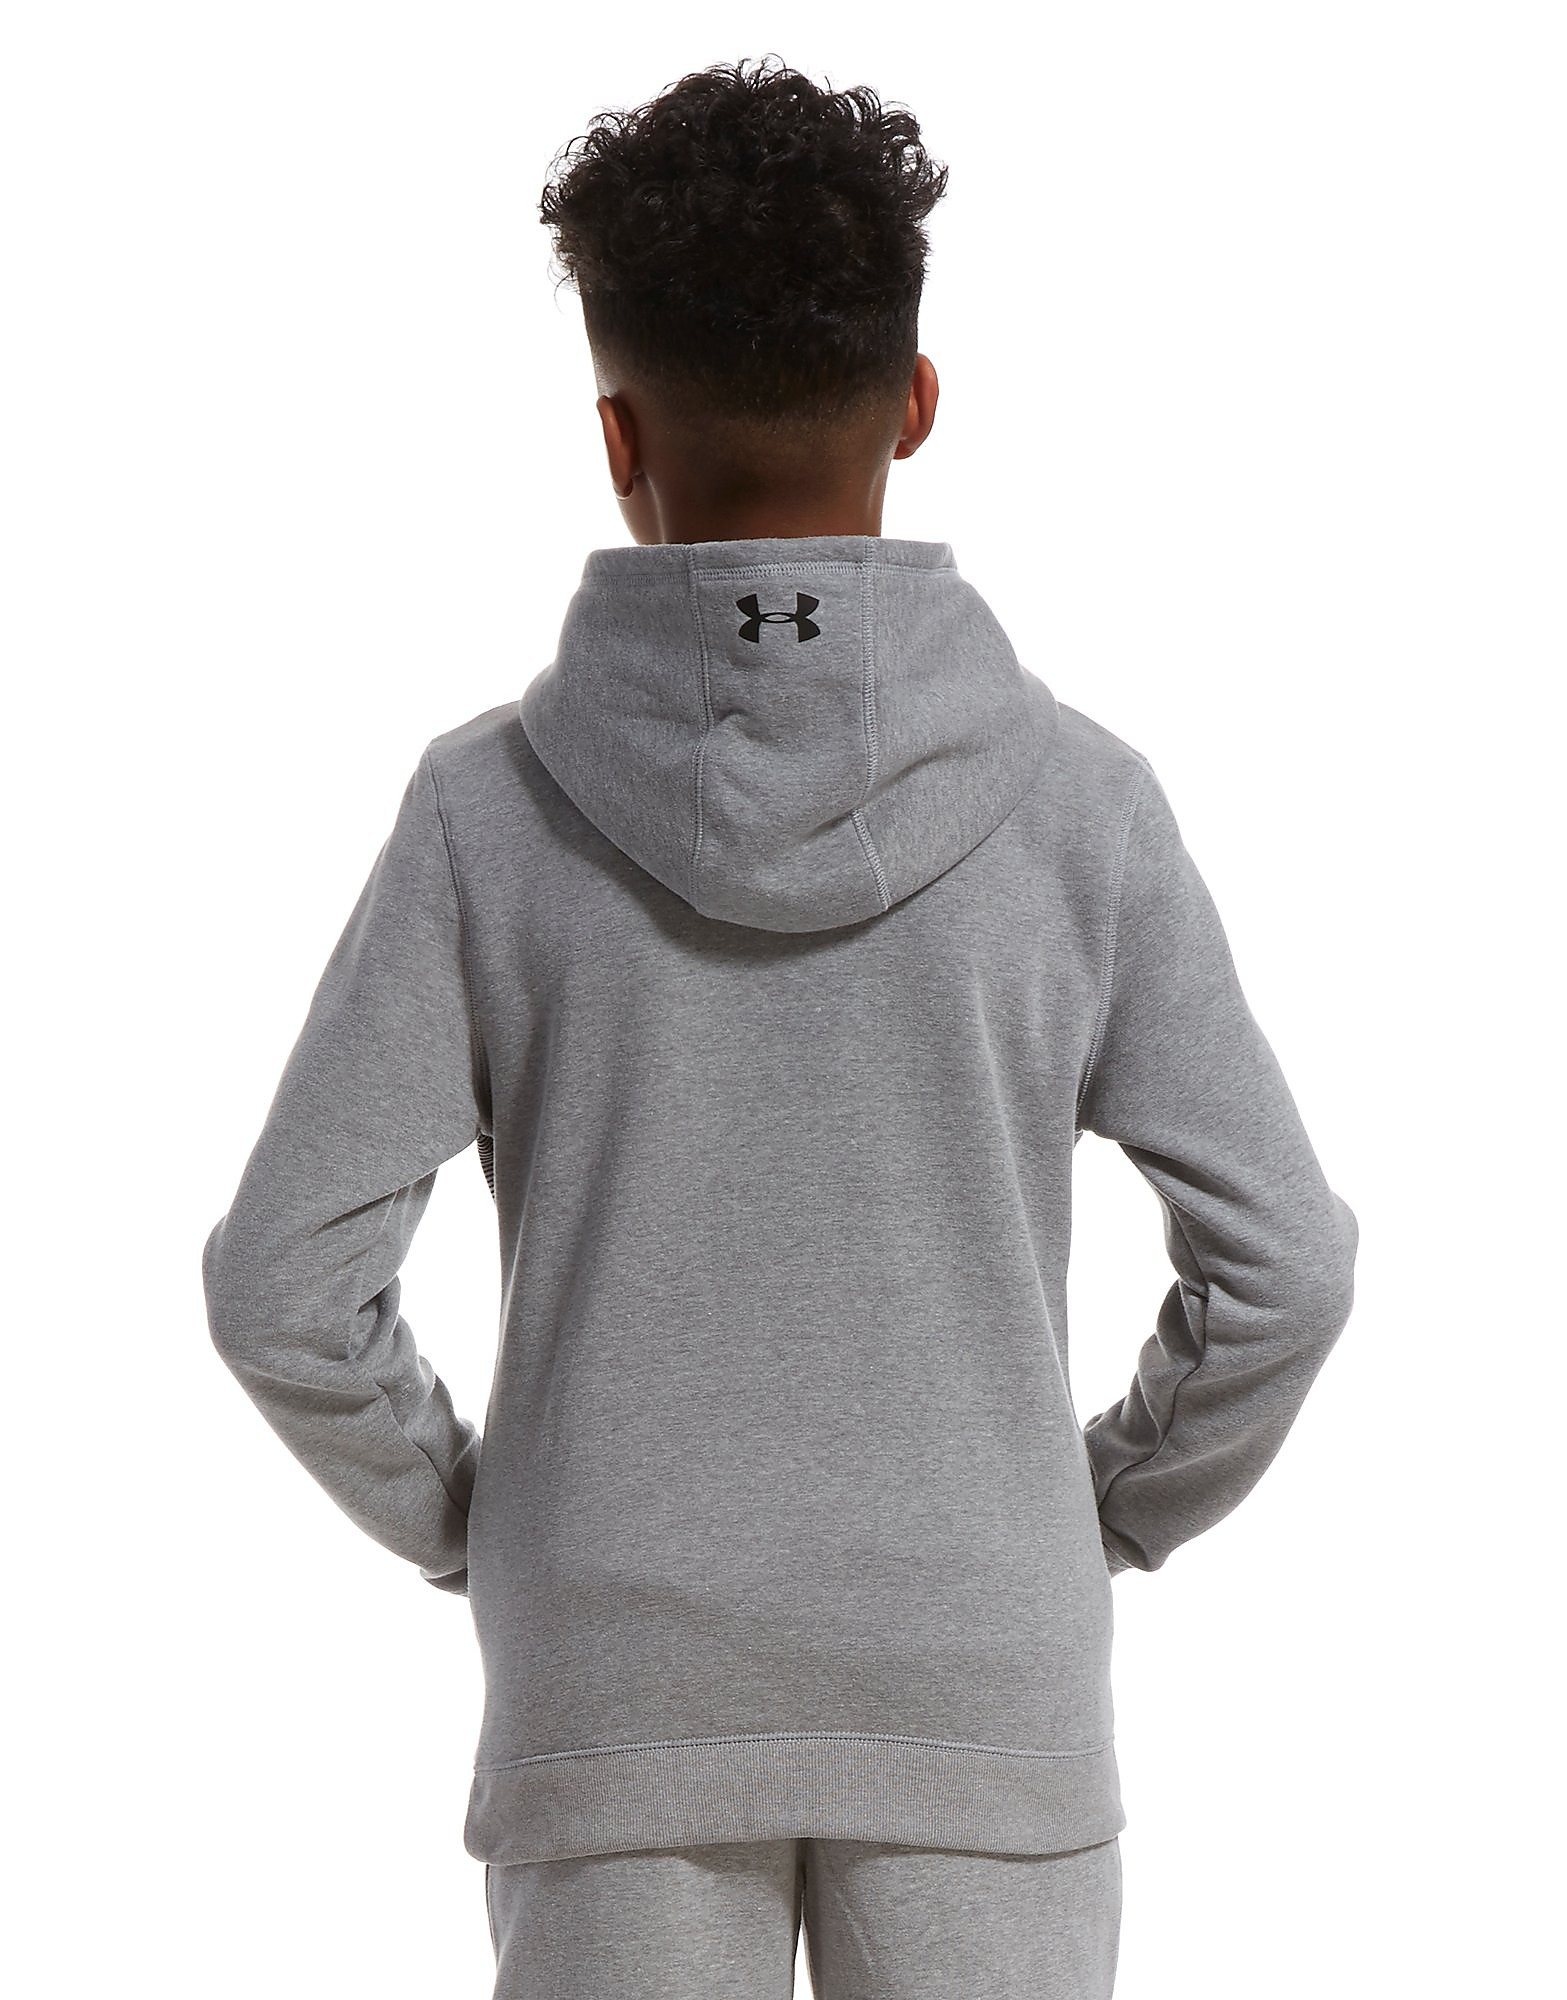 Under Armour sudadera Brushed Graphic júnior